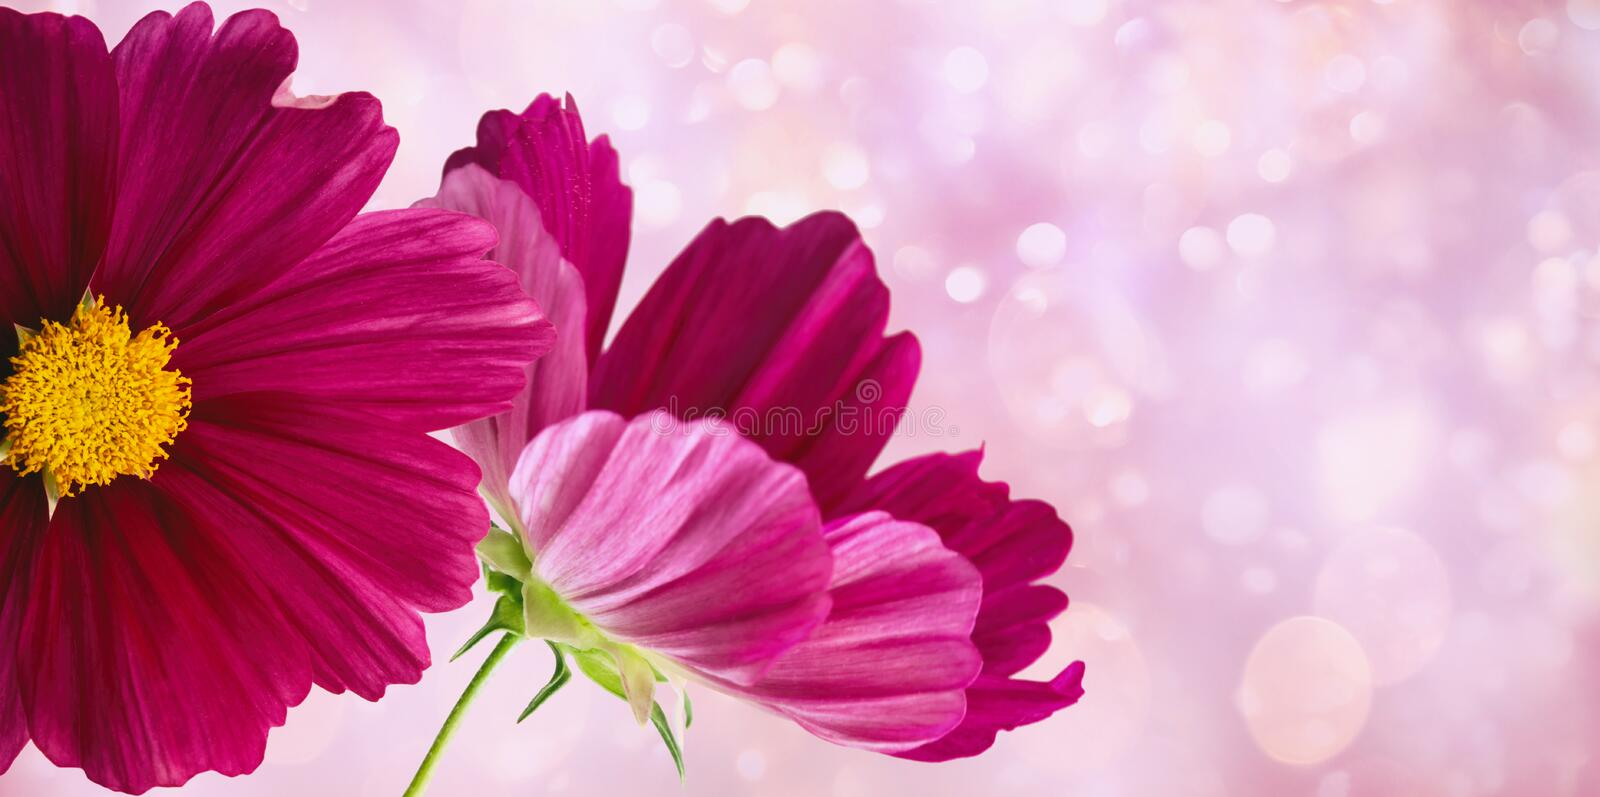 Dark pink cosmos flowers on soft pastel background royalty free stock photography